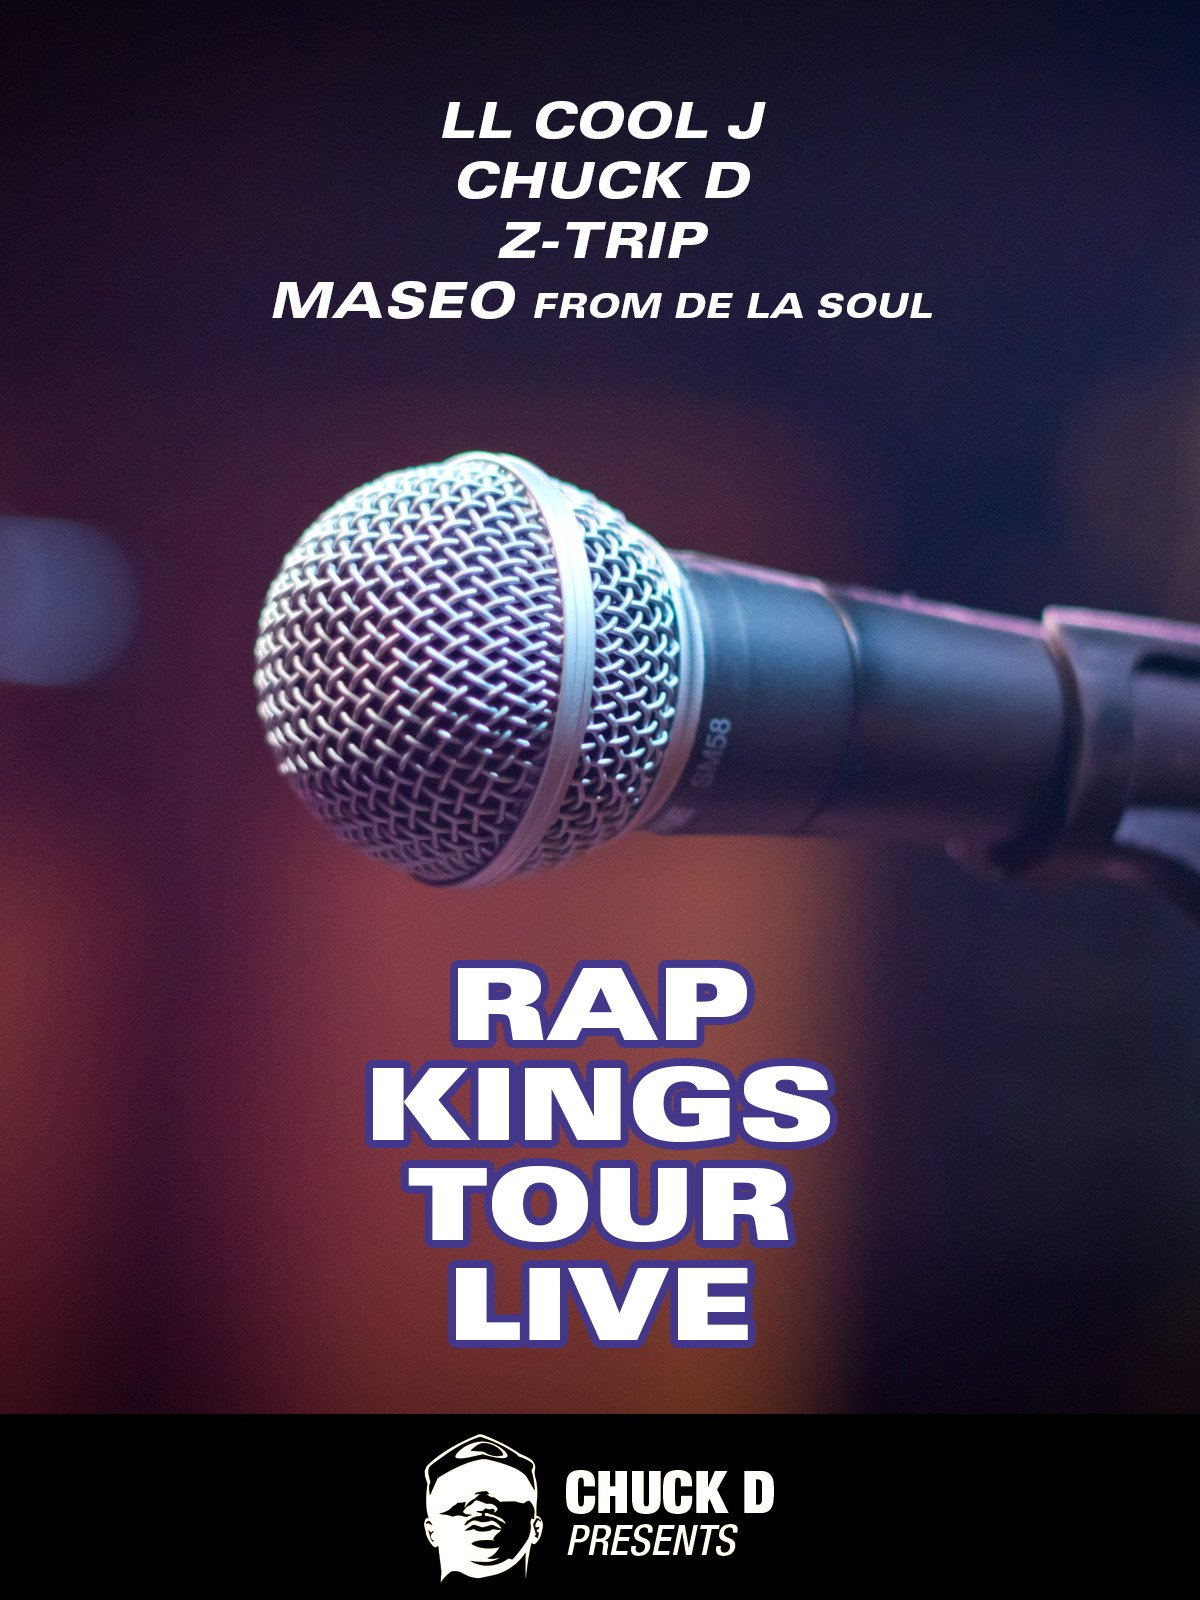 Chuck D Presents: Rap Kings Tour Live